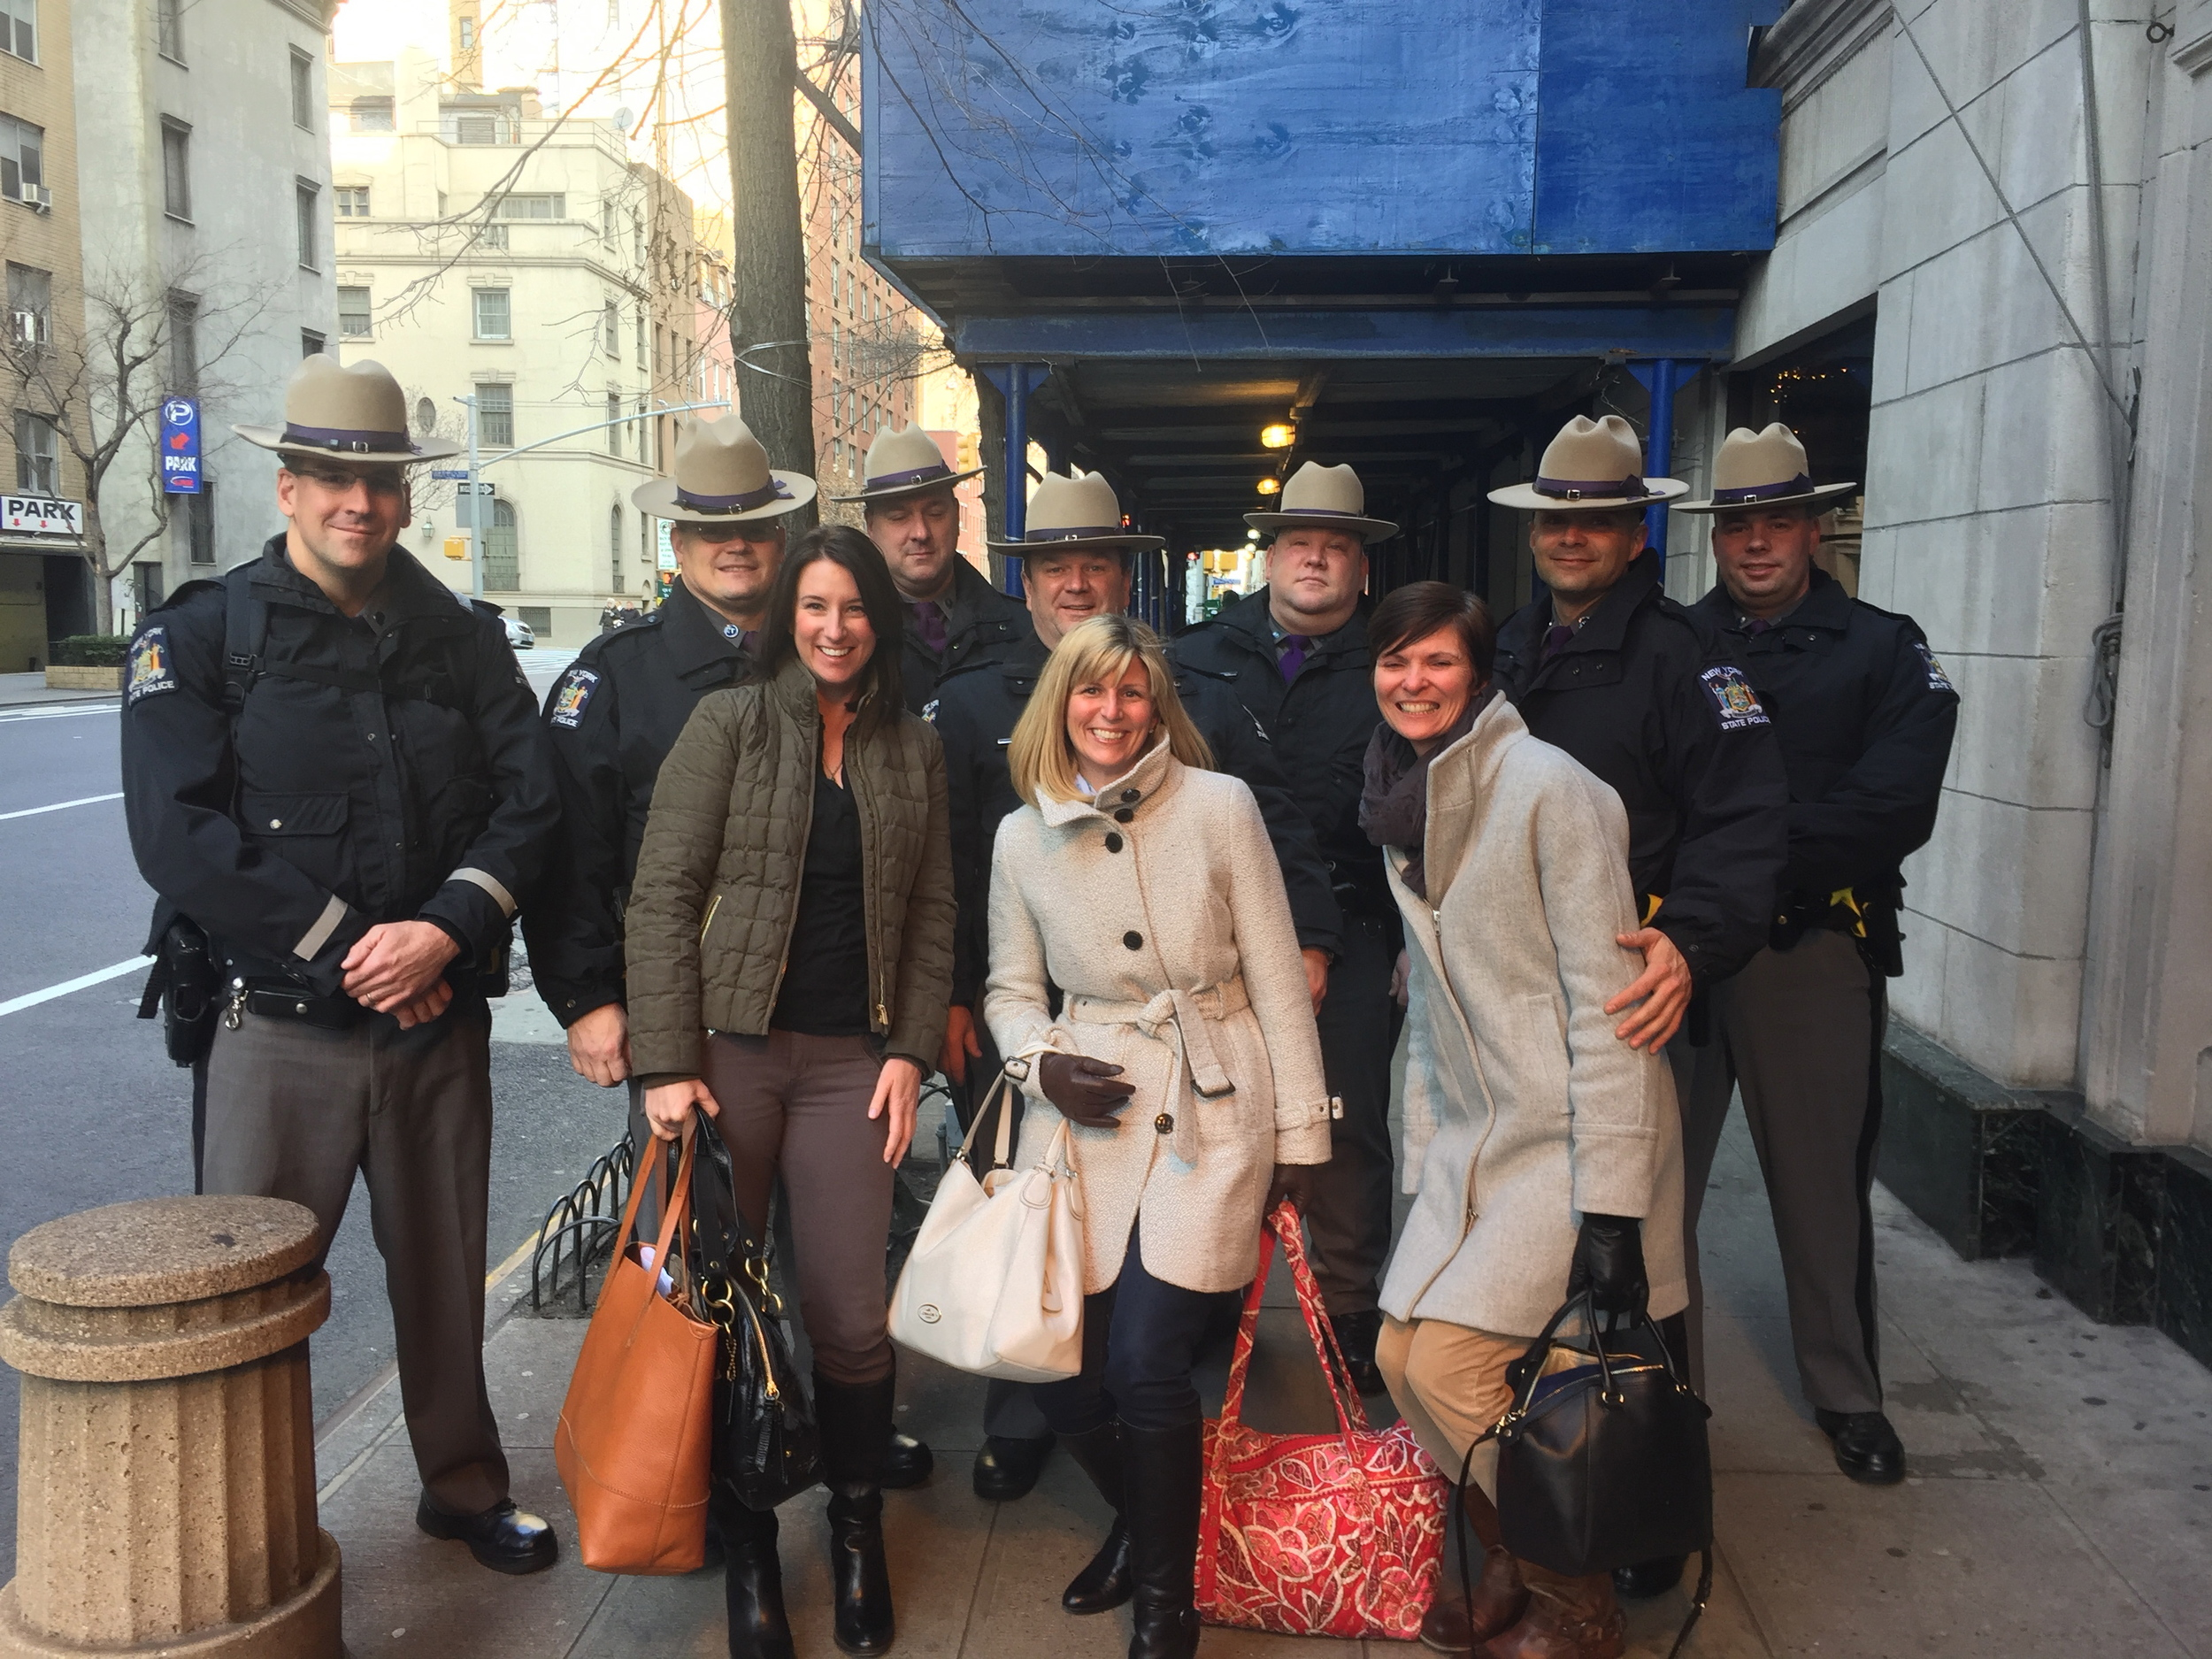 This is where we exited the cab on our arrival!  Safe in New York.  We are not sure why all the officers were there.  In all our giggling and managing of too many bags for a weekend we failed to ask.  But appreciated the kindness from the start in New York :)  www.saranobledesigns.com